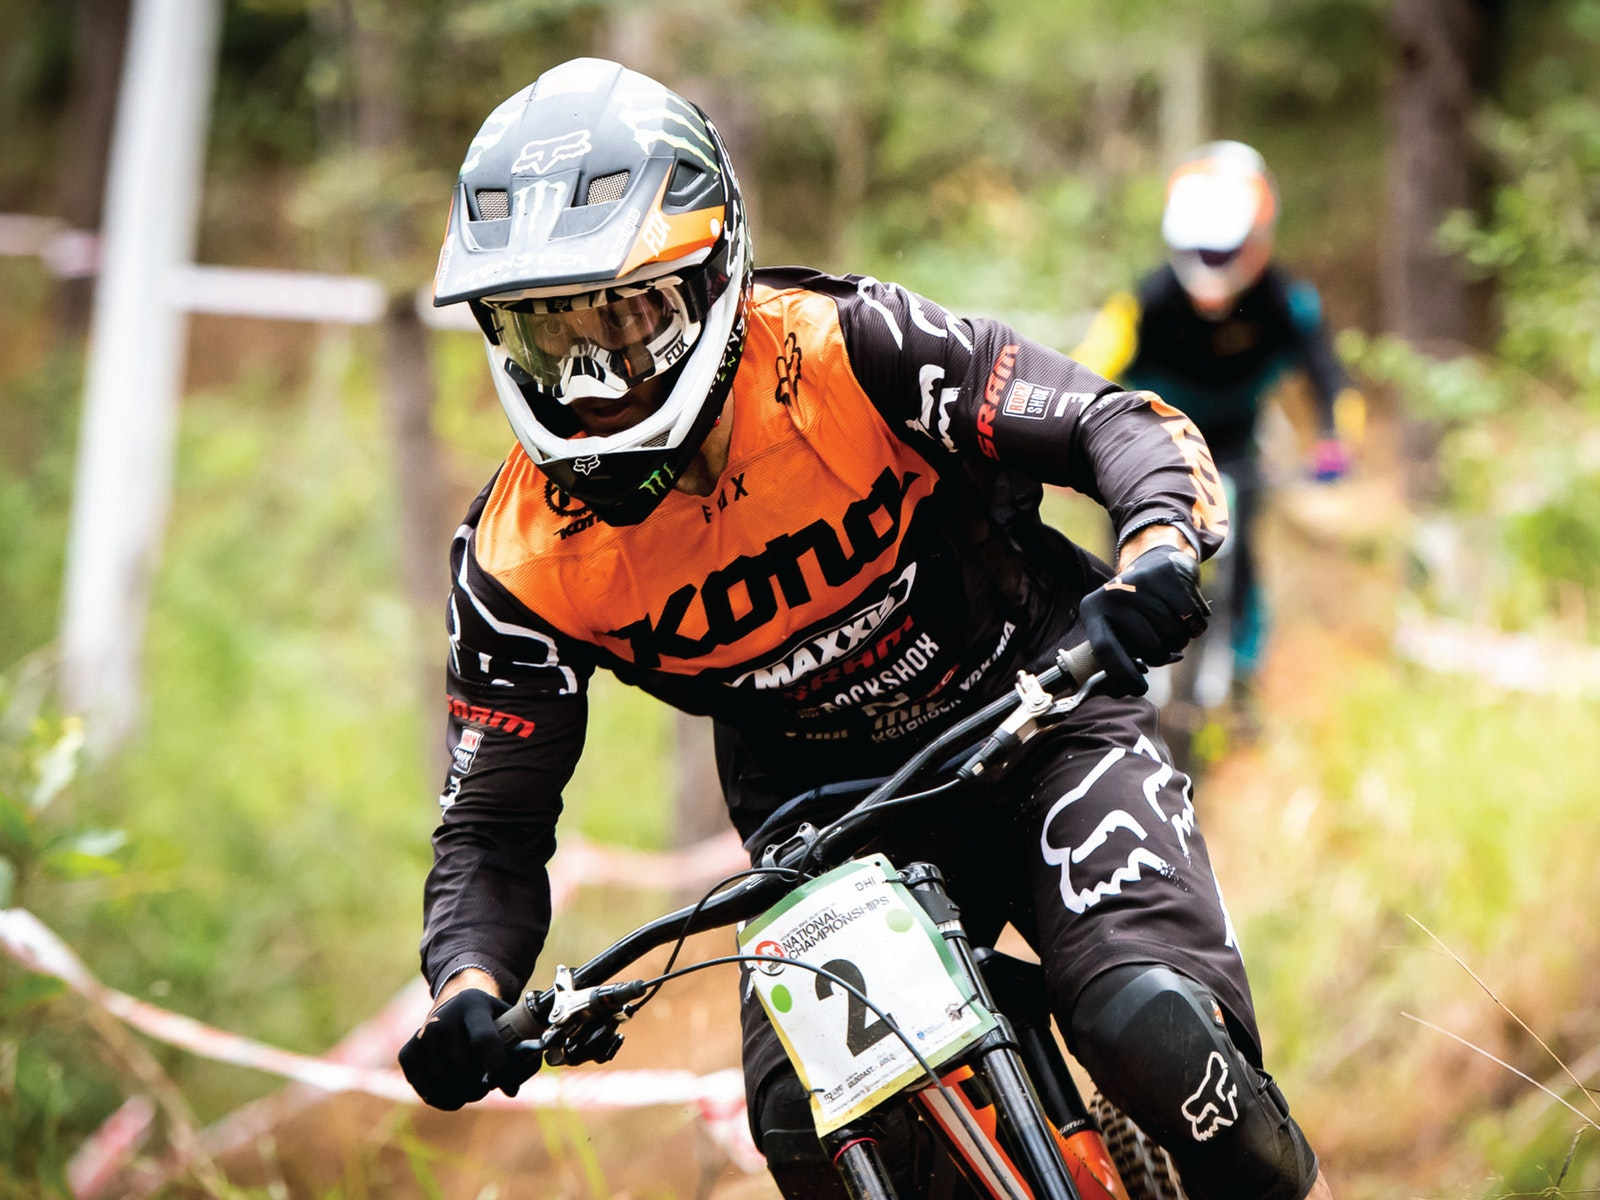 2018 Downhill National Championships